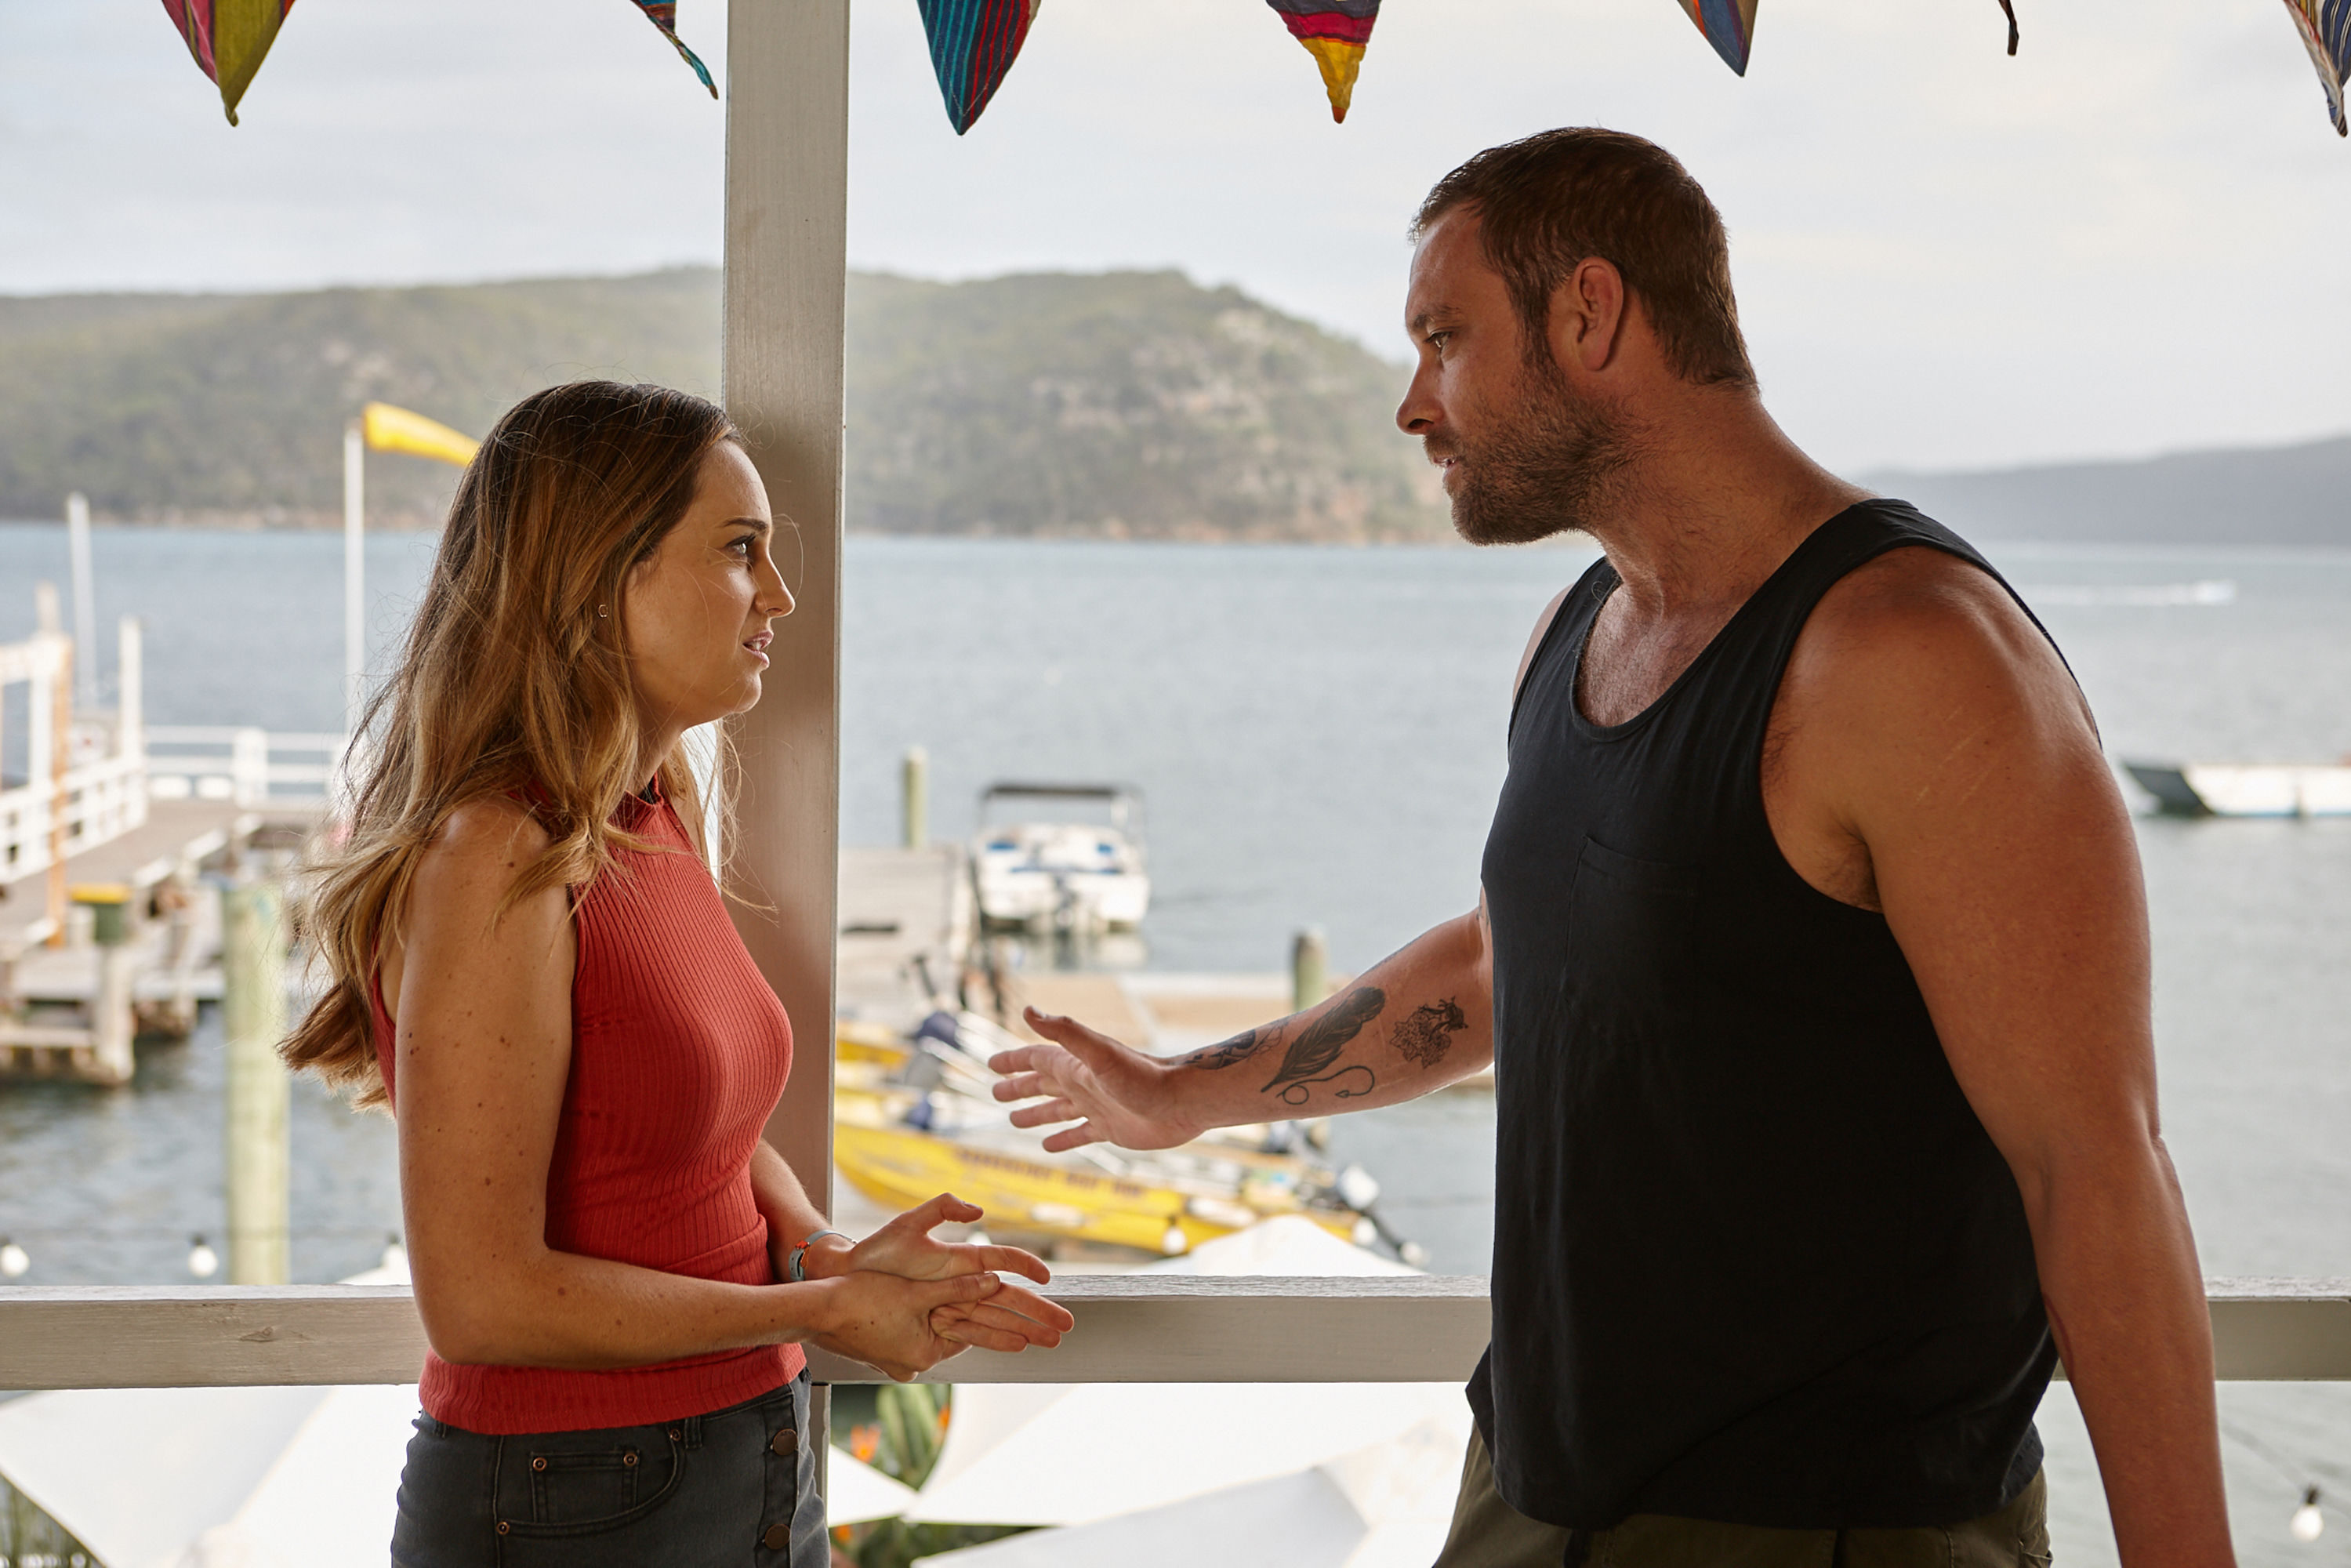 **EMBARGO 24TH SEPTEMBER 2018** Home & Away EP 6957 Robbo (JAKE RYAN) is thrown by Tori's (PENNY MCNAMEE) IVF request